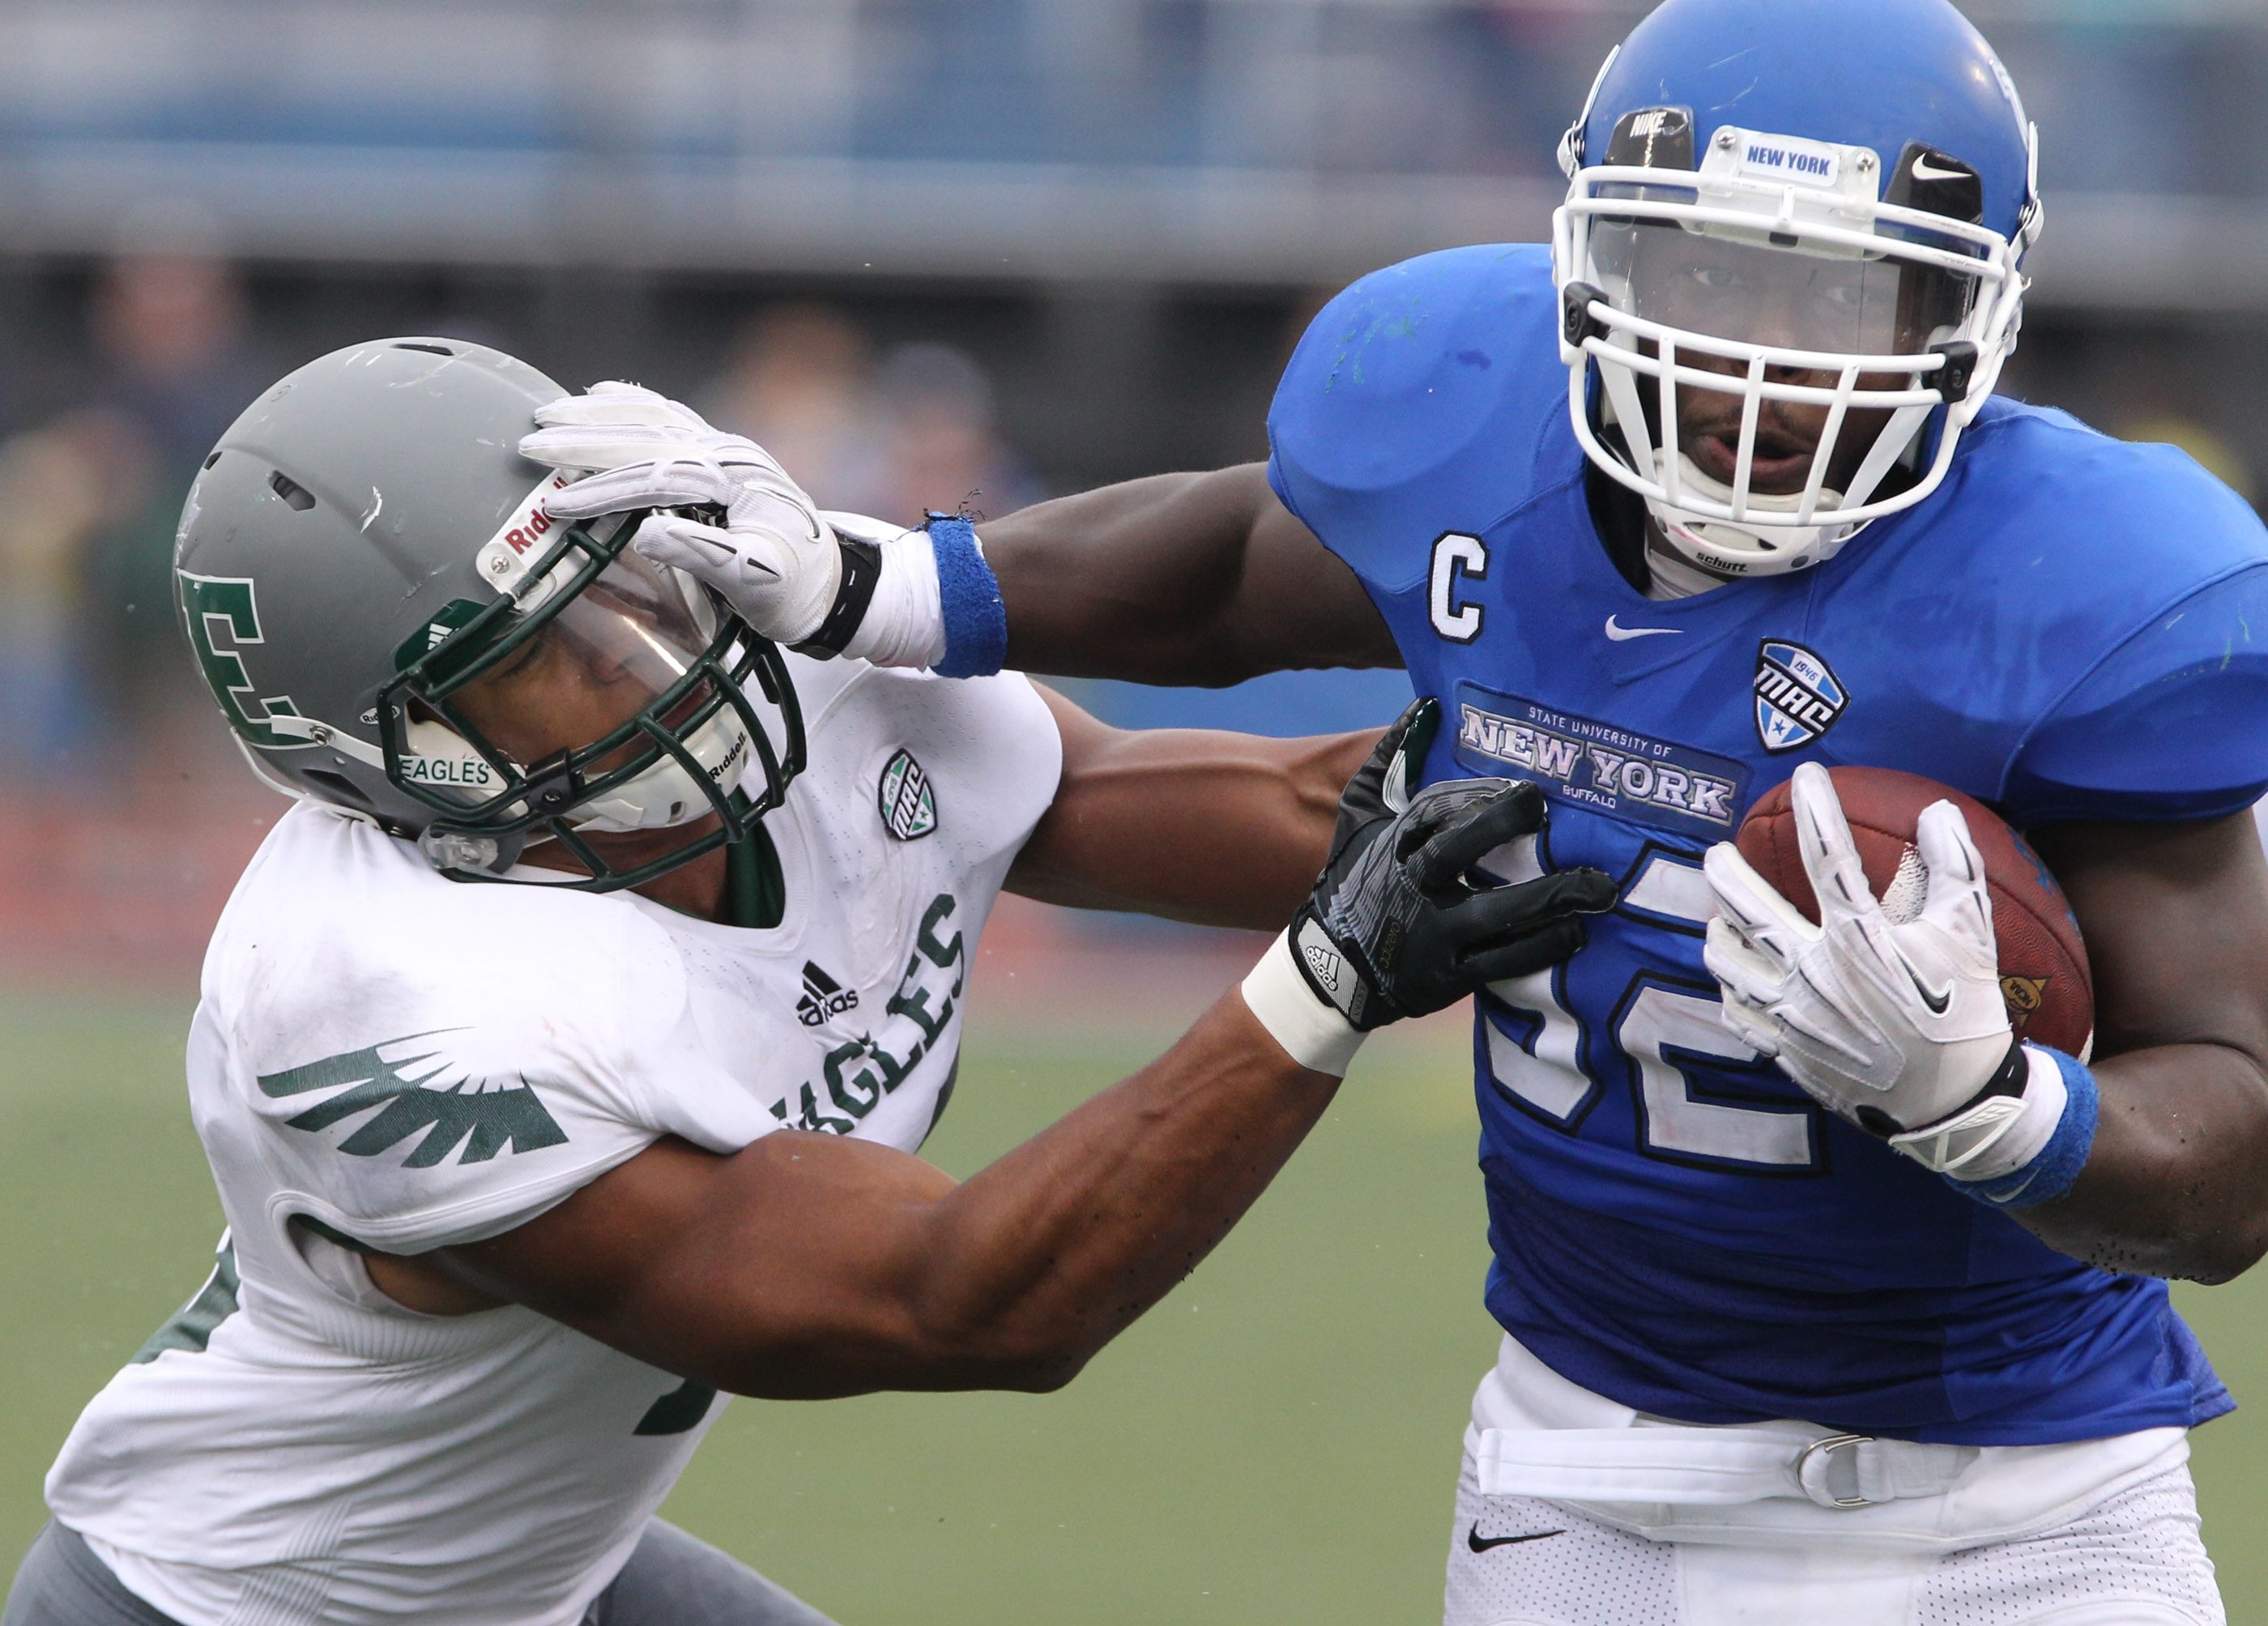 UB's Branden Oliver scores a touchdown over Eastern Michigan linebacker Ike Spearman in the third quarter.